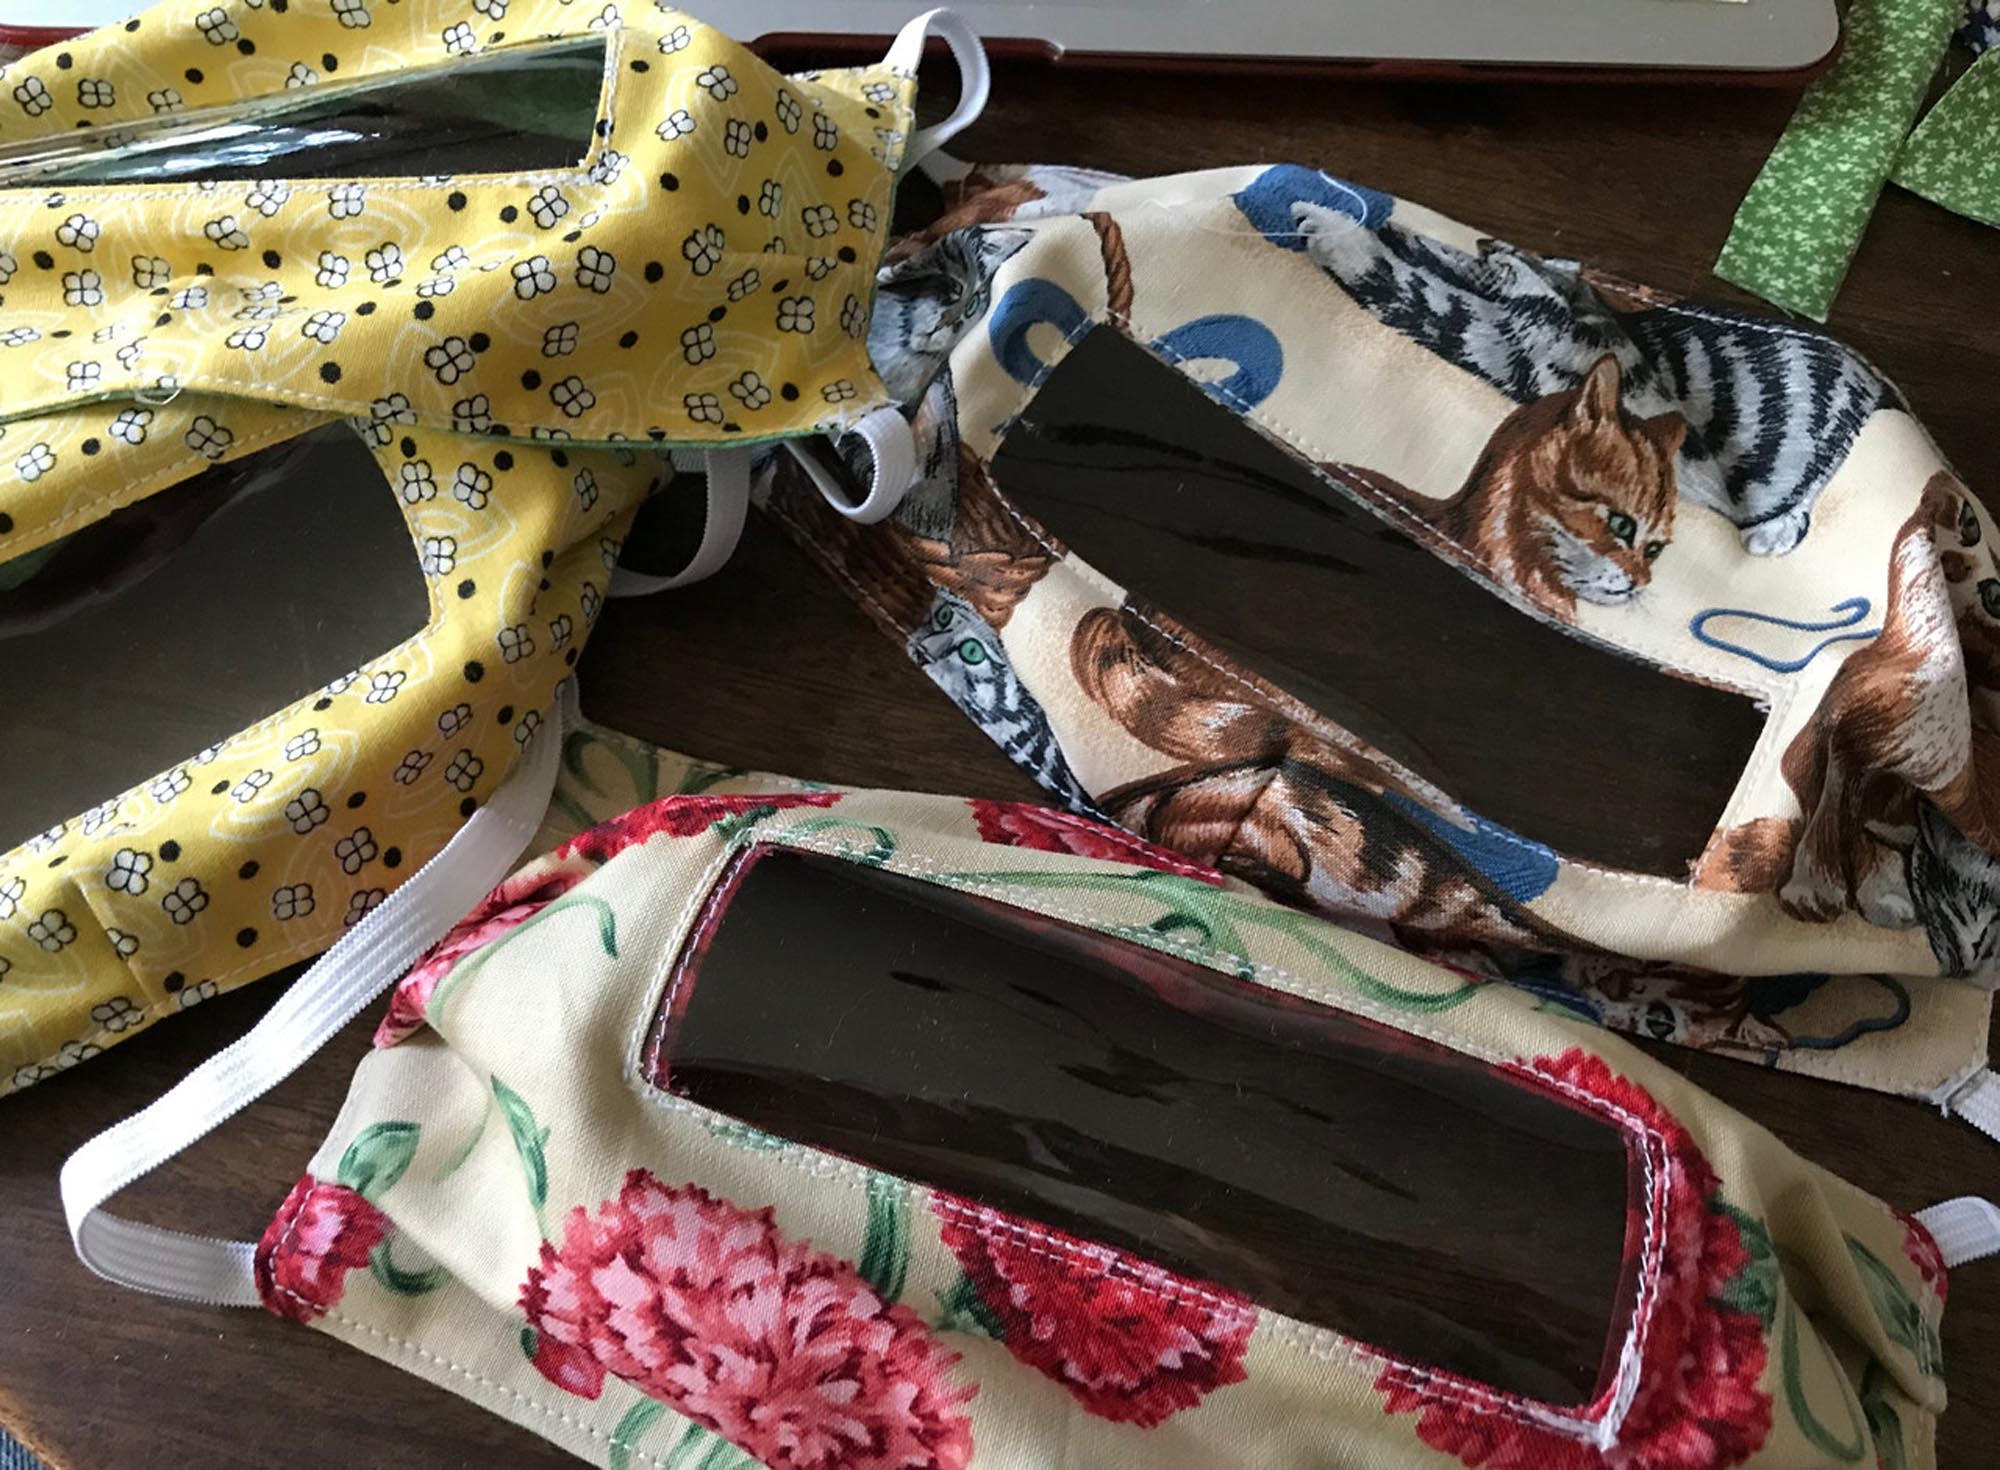 a pile of handmade face masks with windows, with bright floral fabrics